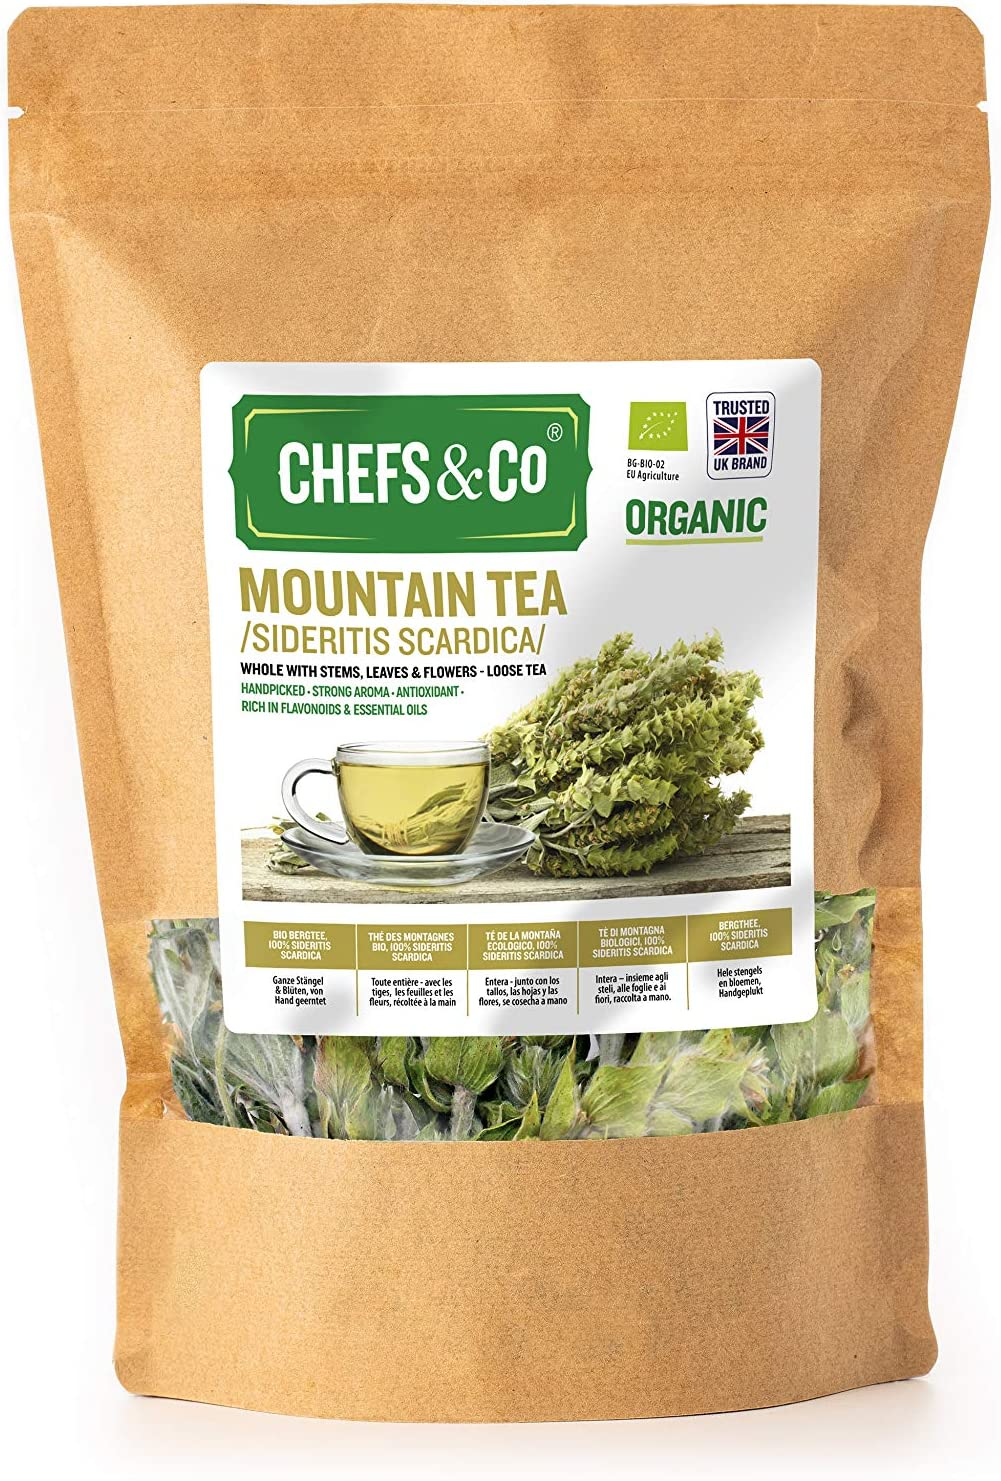 CHEFS&CO Organic Mountain Tea (Sideritis scardica) | Whole with Stems, Leaves & Flowers - Loose Tea - 80 gr